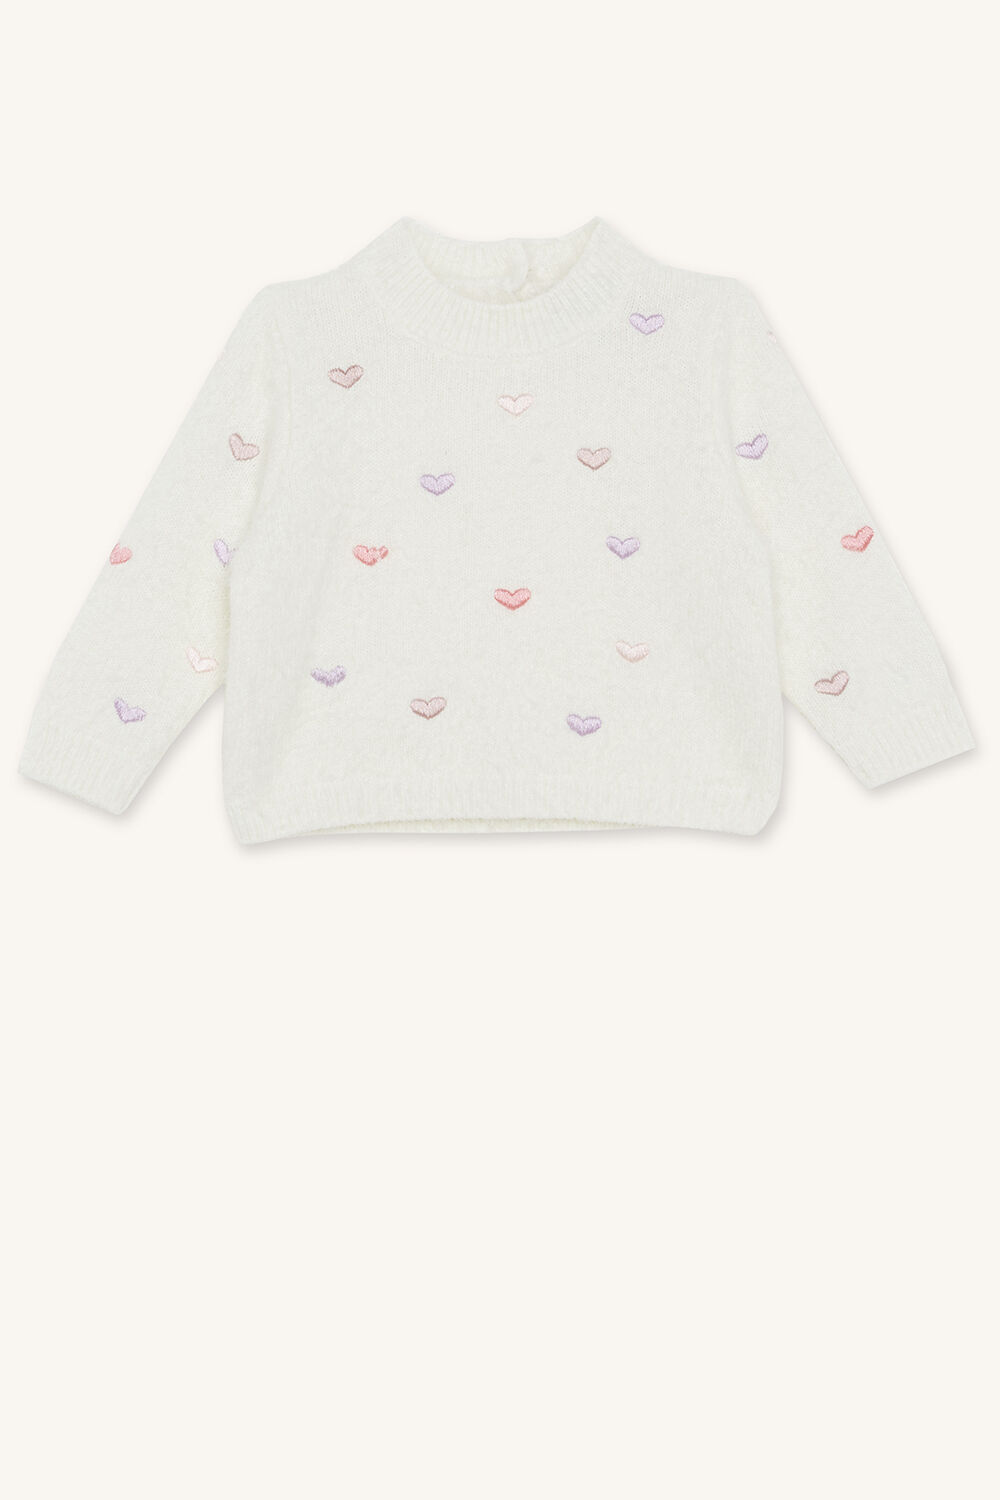 HEARTS FLUFFY KNIT JUMPER in colour ANTIQUE WHITE